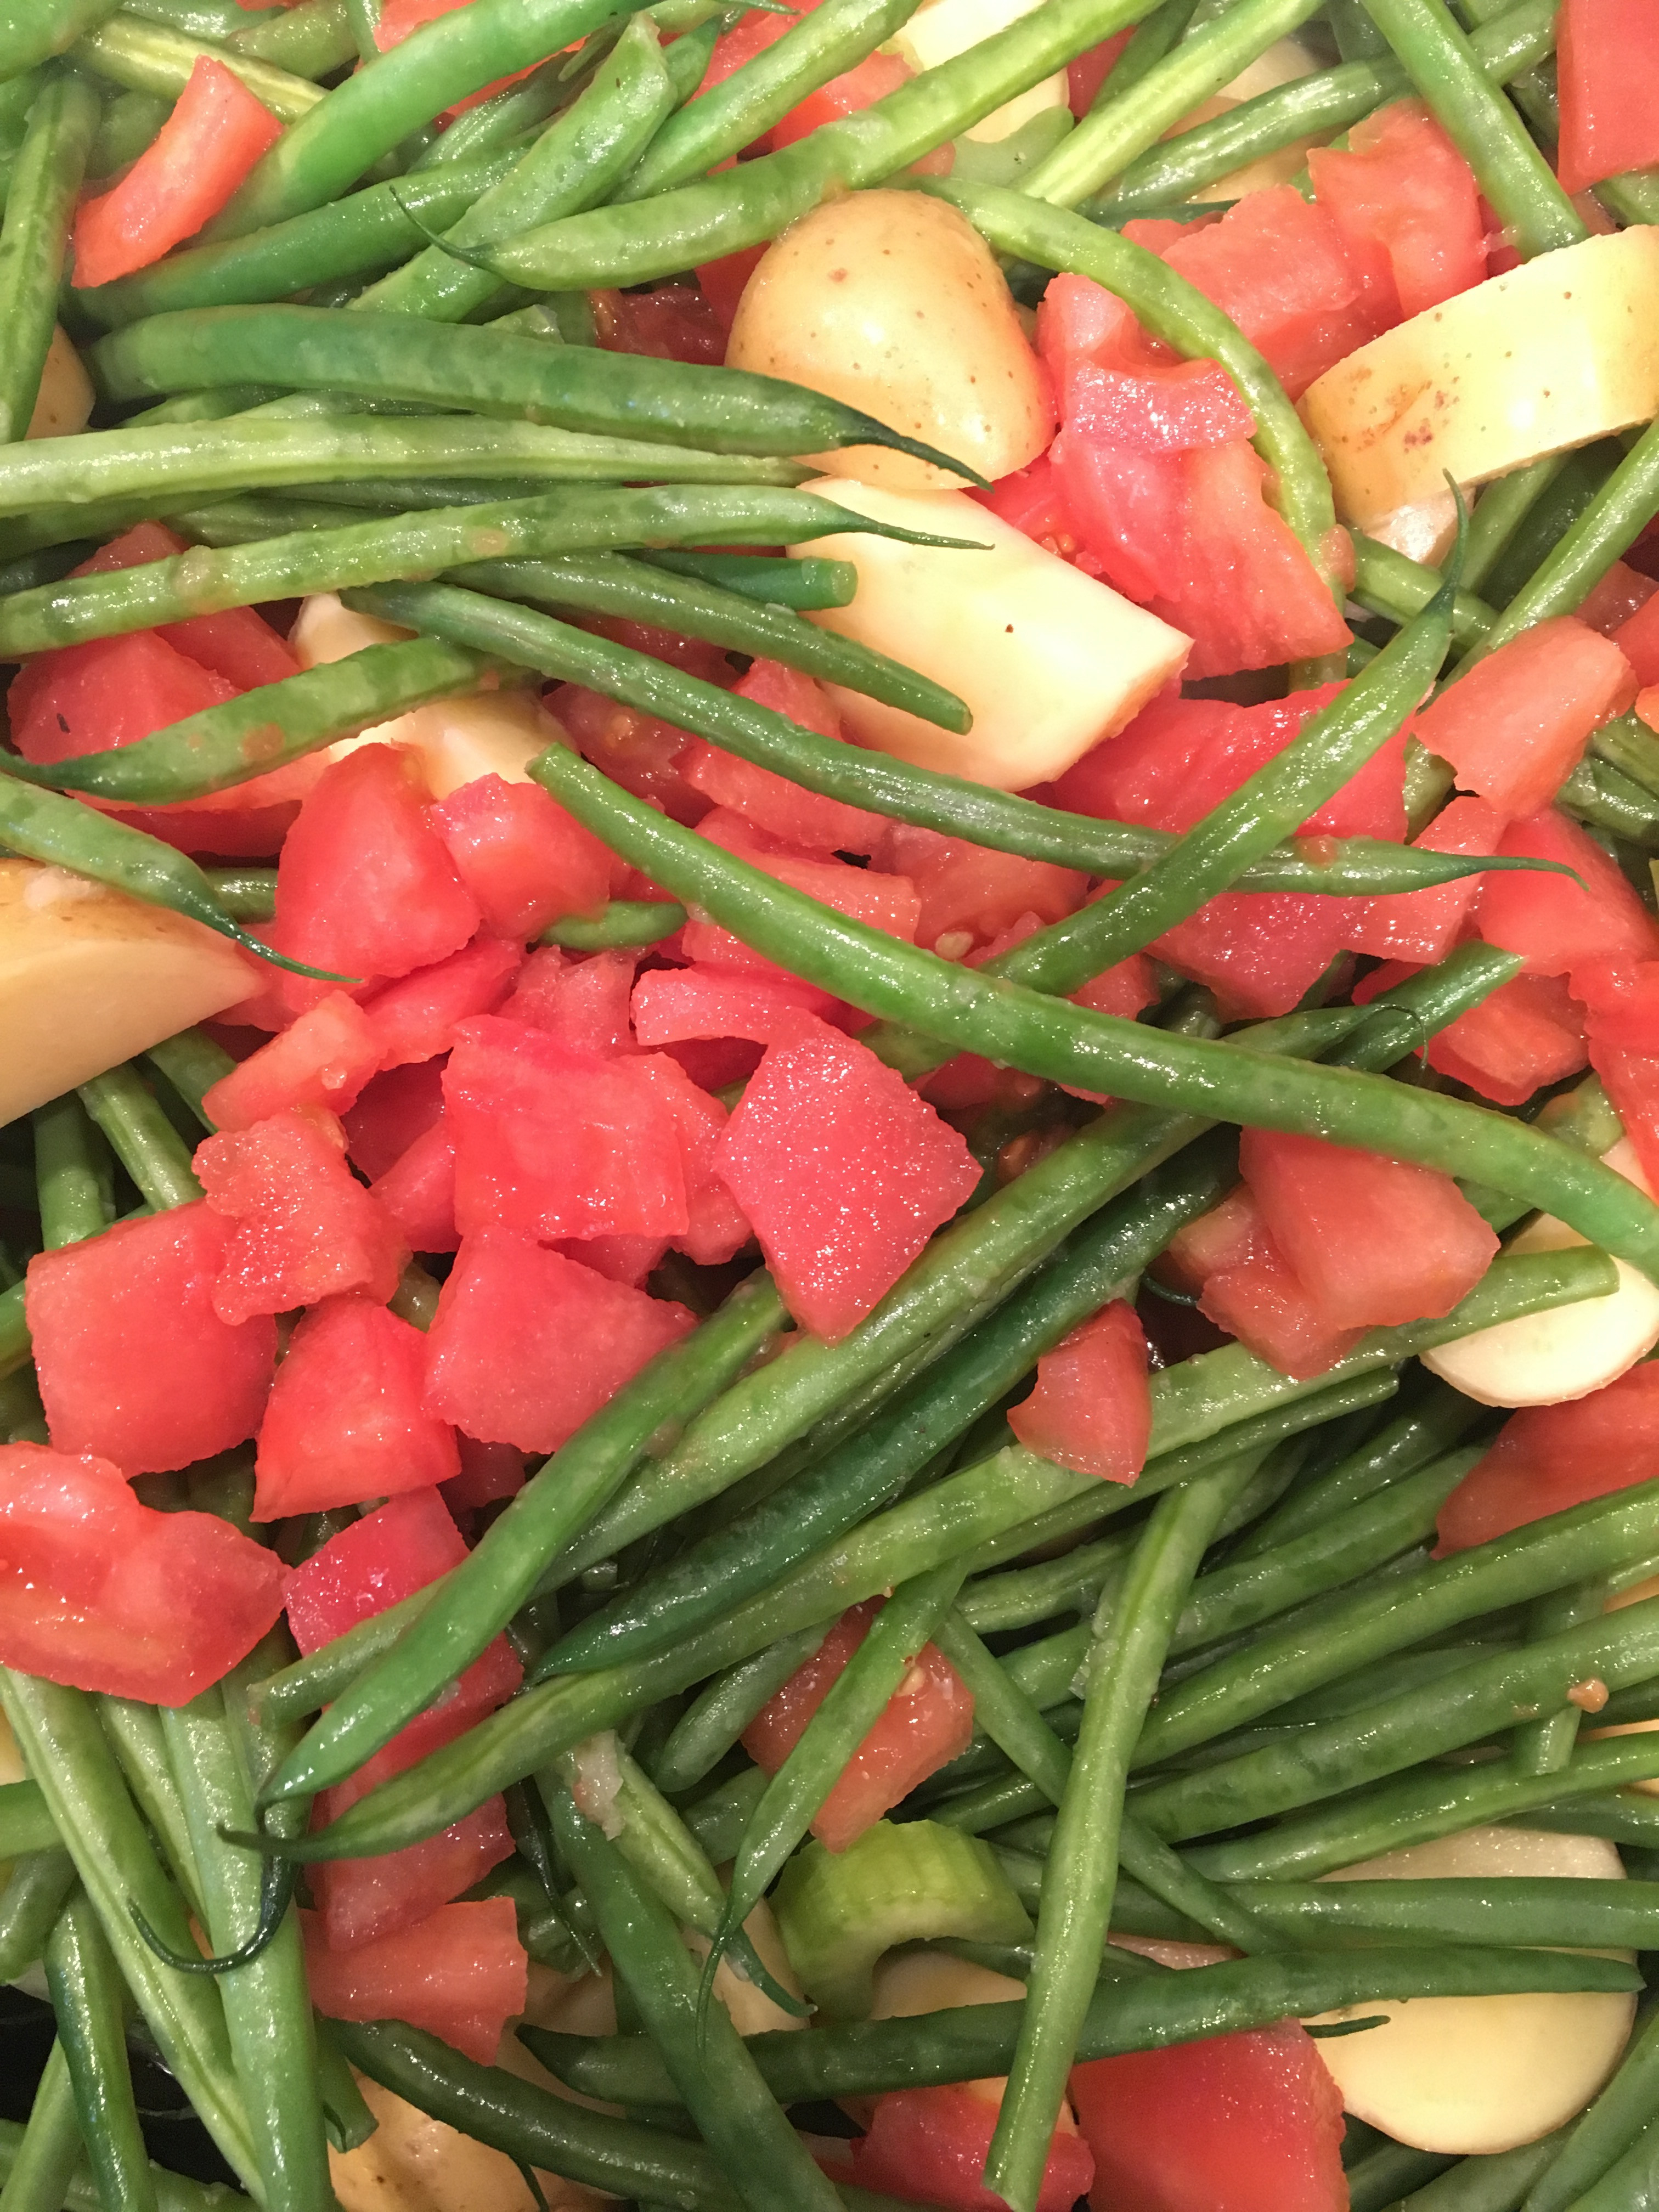 Beans Greens Tomatoes Potatoes  Green Beans Potatoes and Tomatoes Blythes Blog